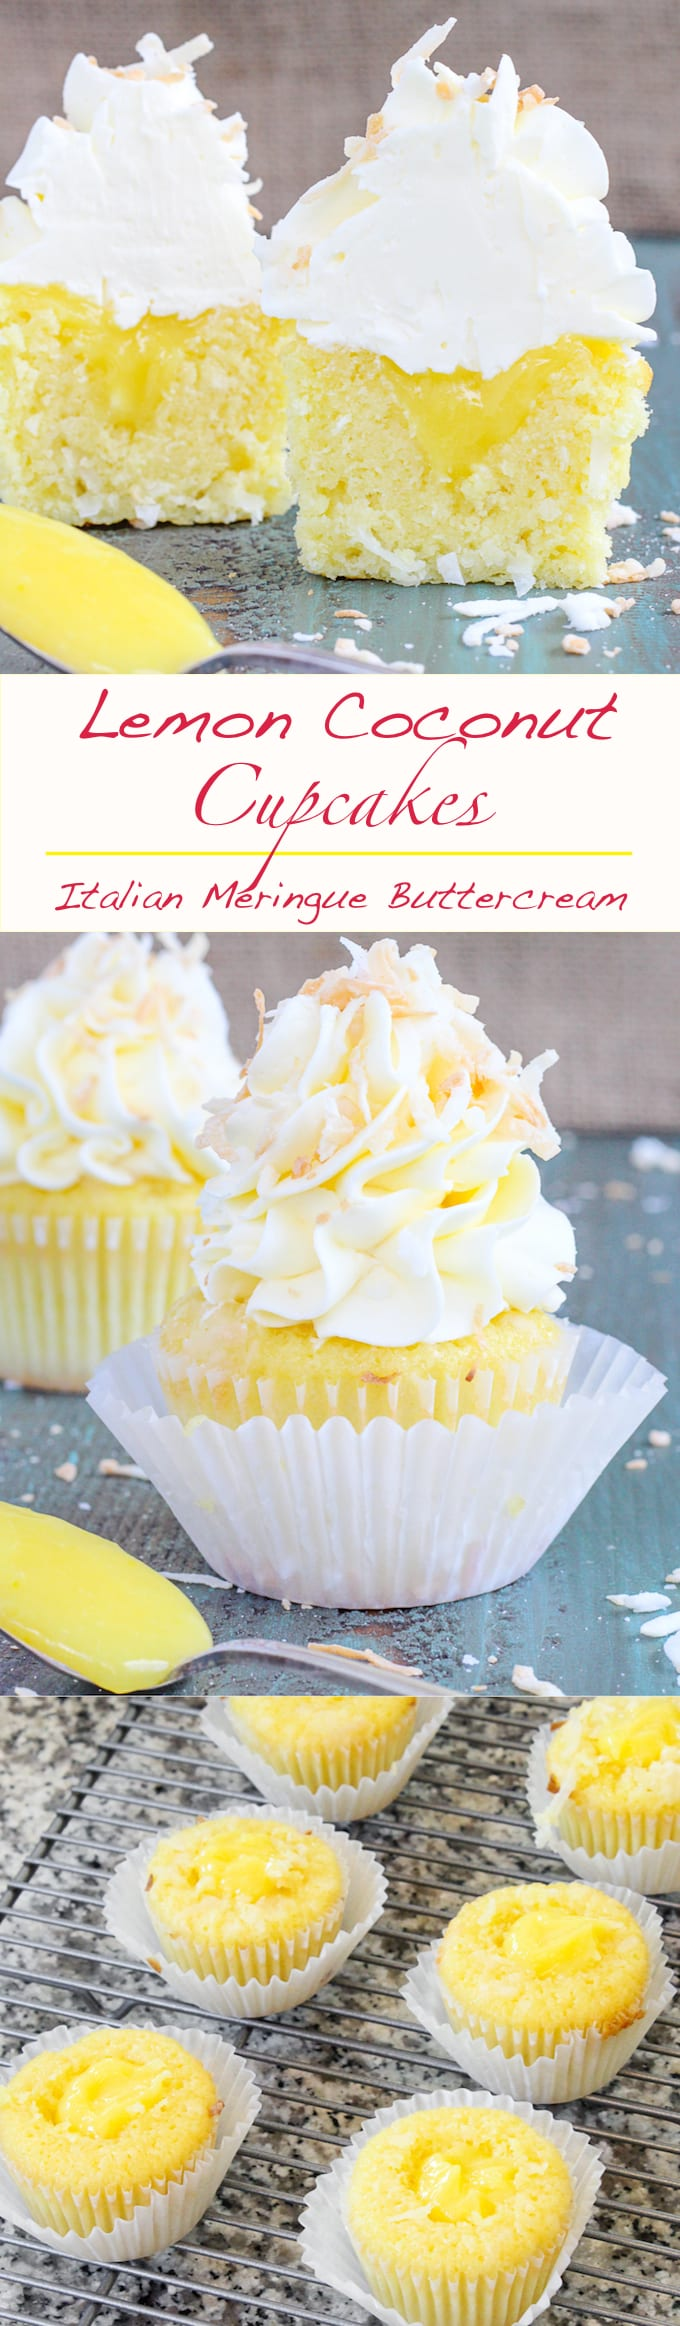 In these Lemon Coconut Cupcakes a moist coconut cupcake that is made with both dried coconut and coconut milk is filled with lemon curd and then topped with a coconut Italian Meringue Buttercream.  And then topped off with some more toasted coconut.